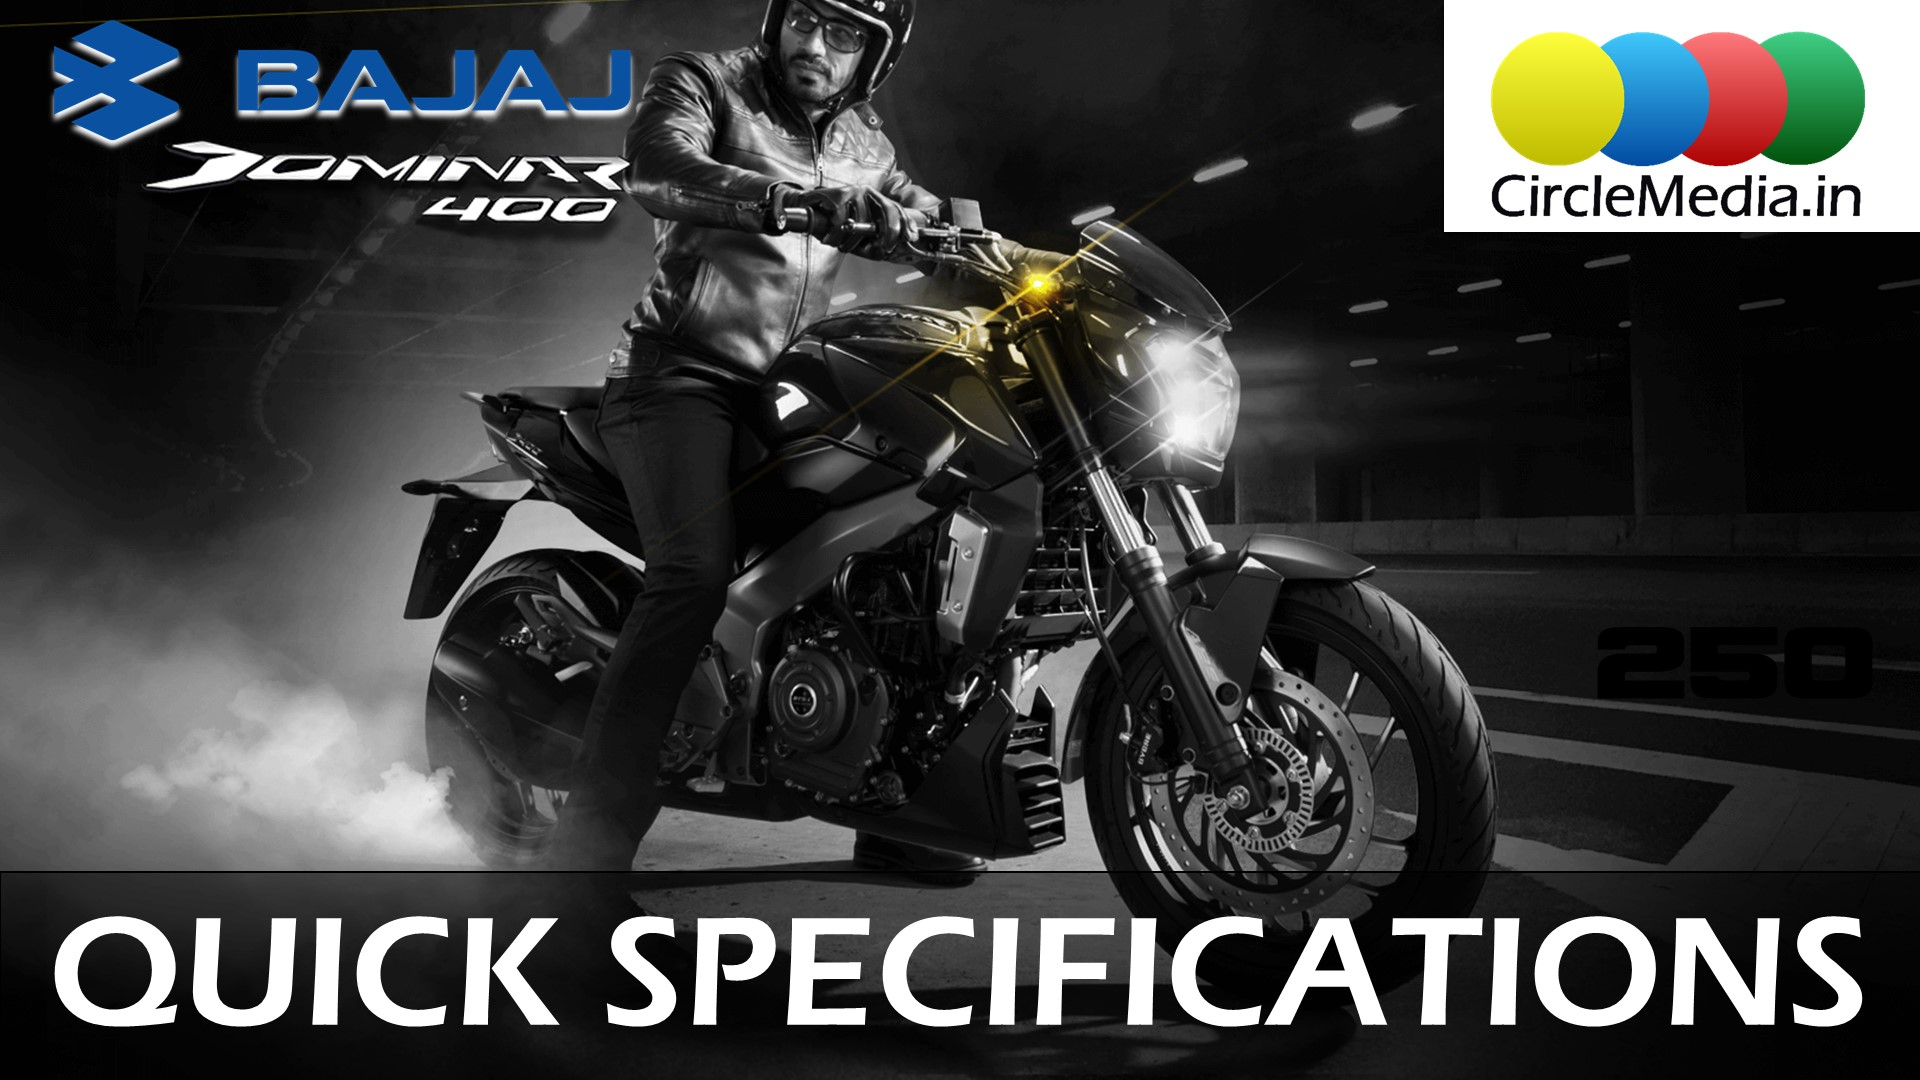 Bajaj Dominar 400 cc Review | Dominar 400 Full features and Specifications | Bajaj new bike 2017